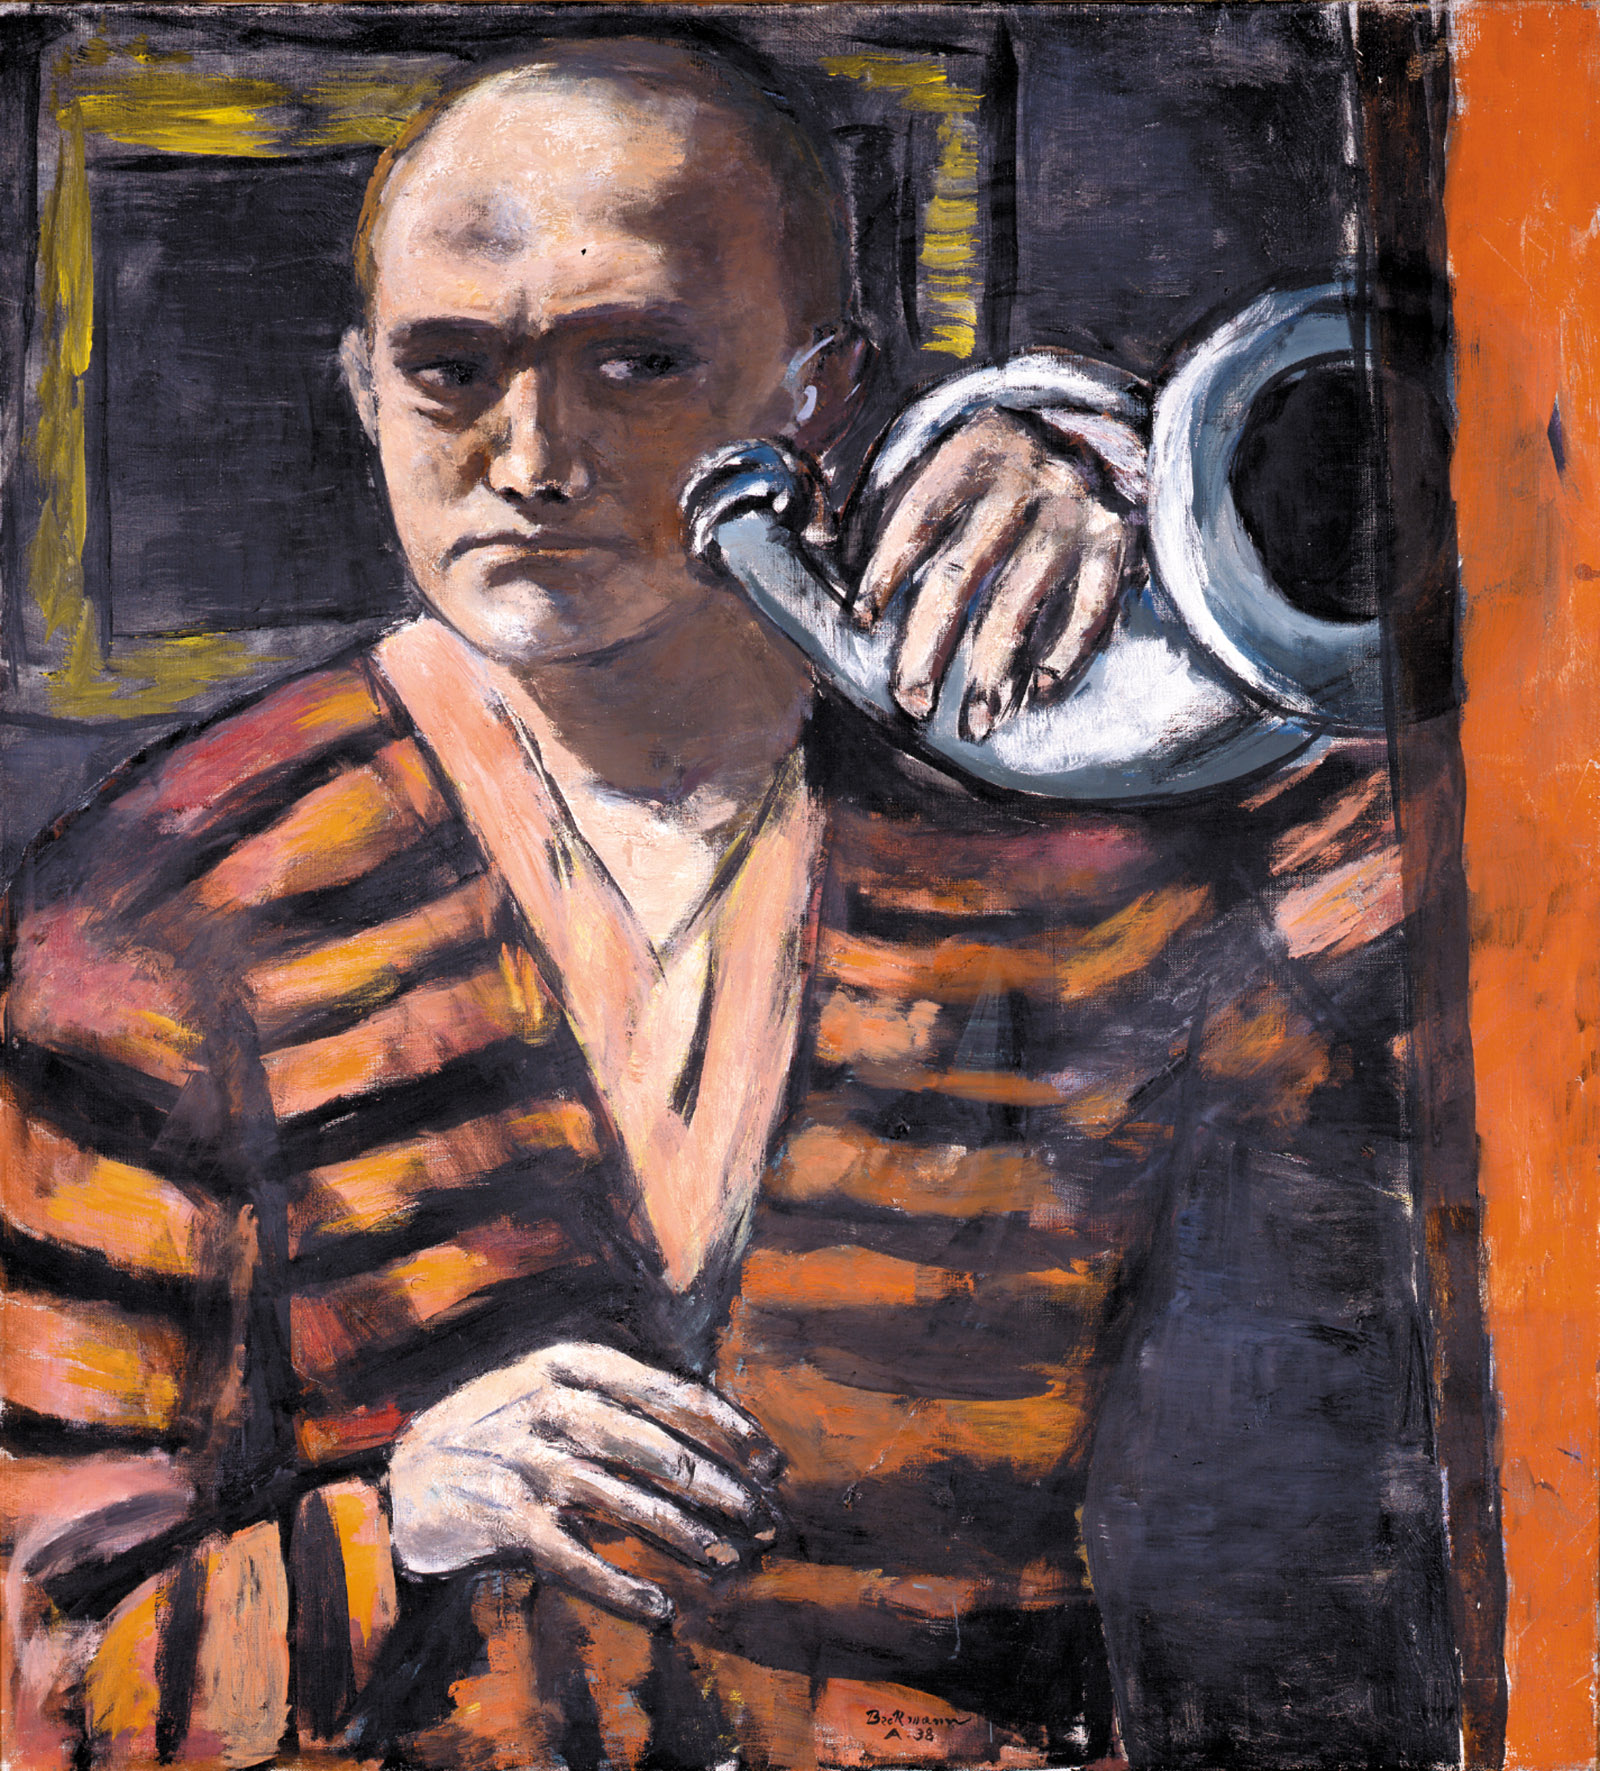 Self-Portrait with Horn by Max Beckmann